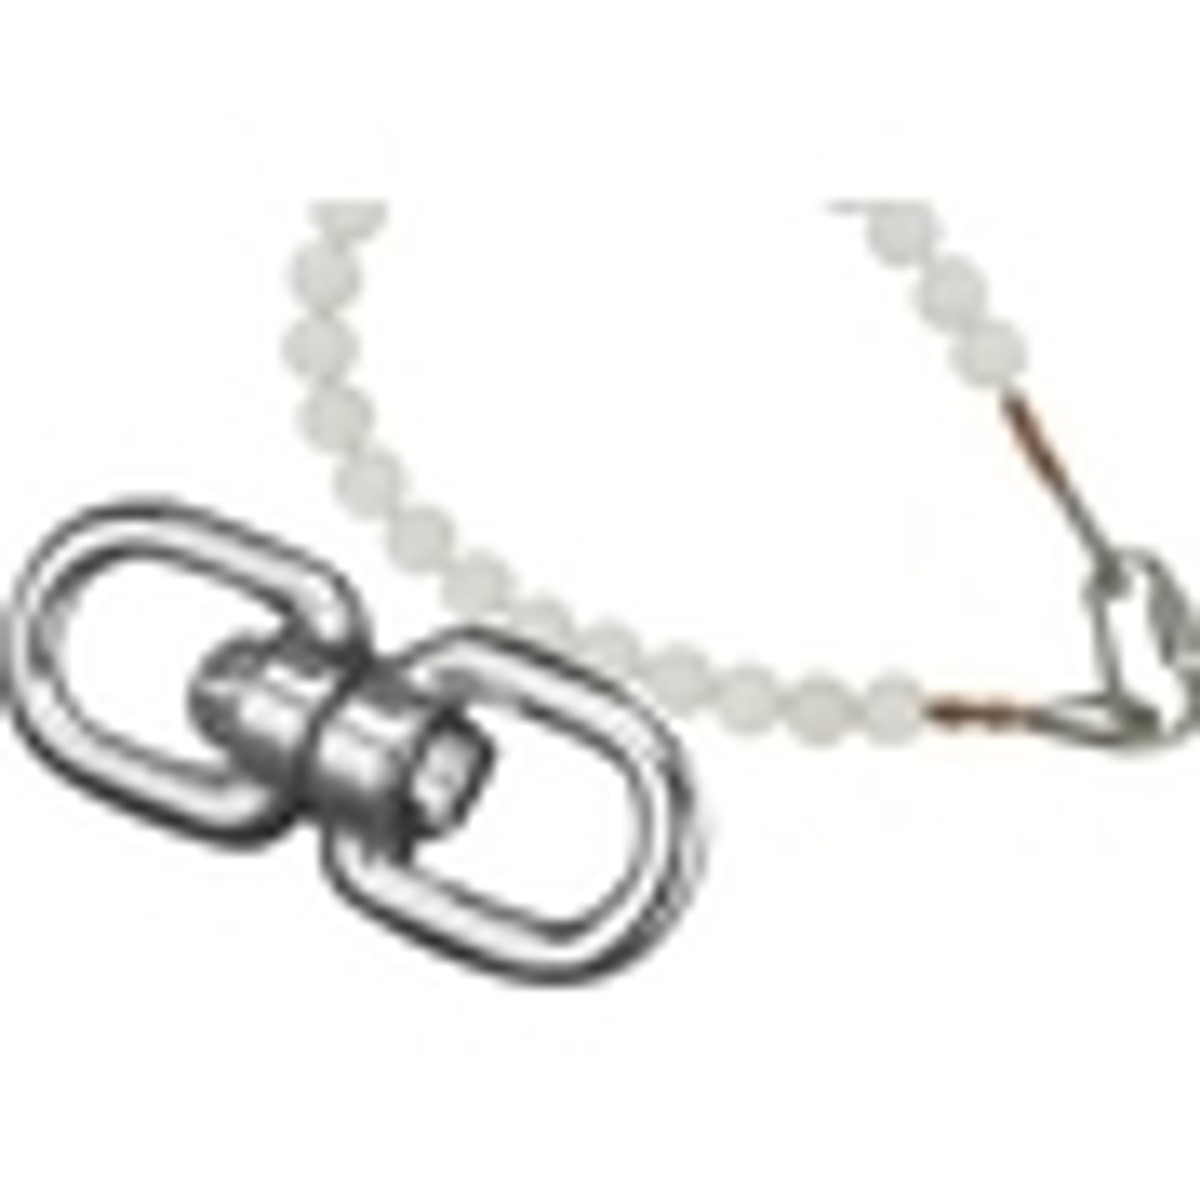 Miscellaneous Accessories for Commercial Poles